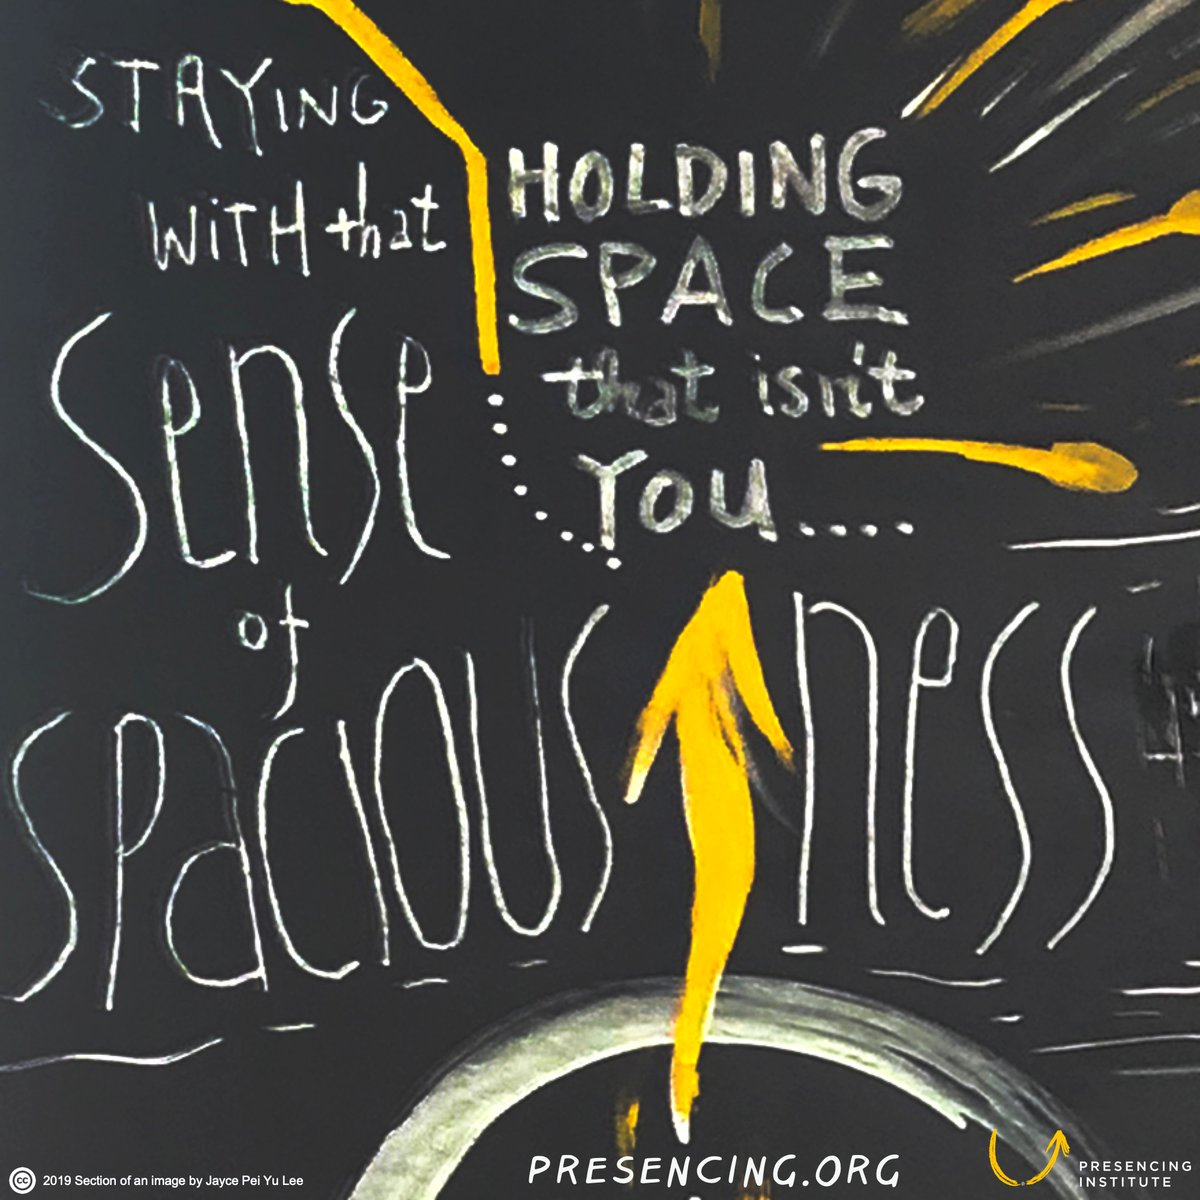 Holding space (for what isnt just you) Staying with that sense of spaciousness #payitforward @presencing_inst bit.ly/35YD6j8 Image: @jaycelee